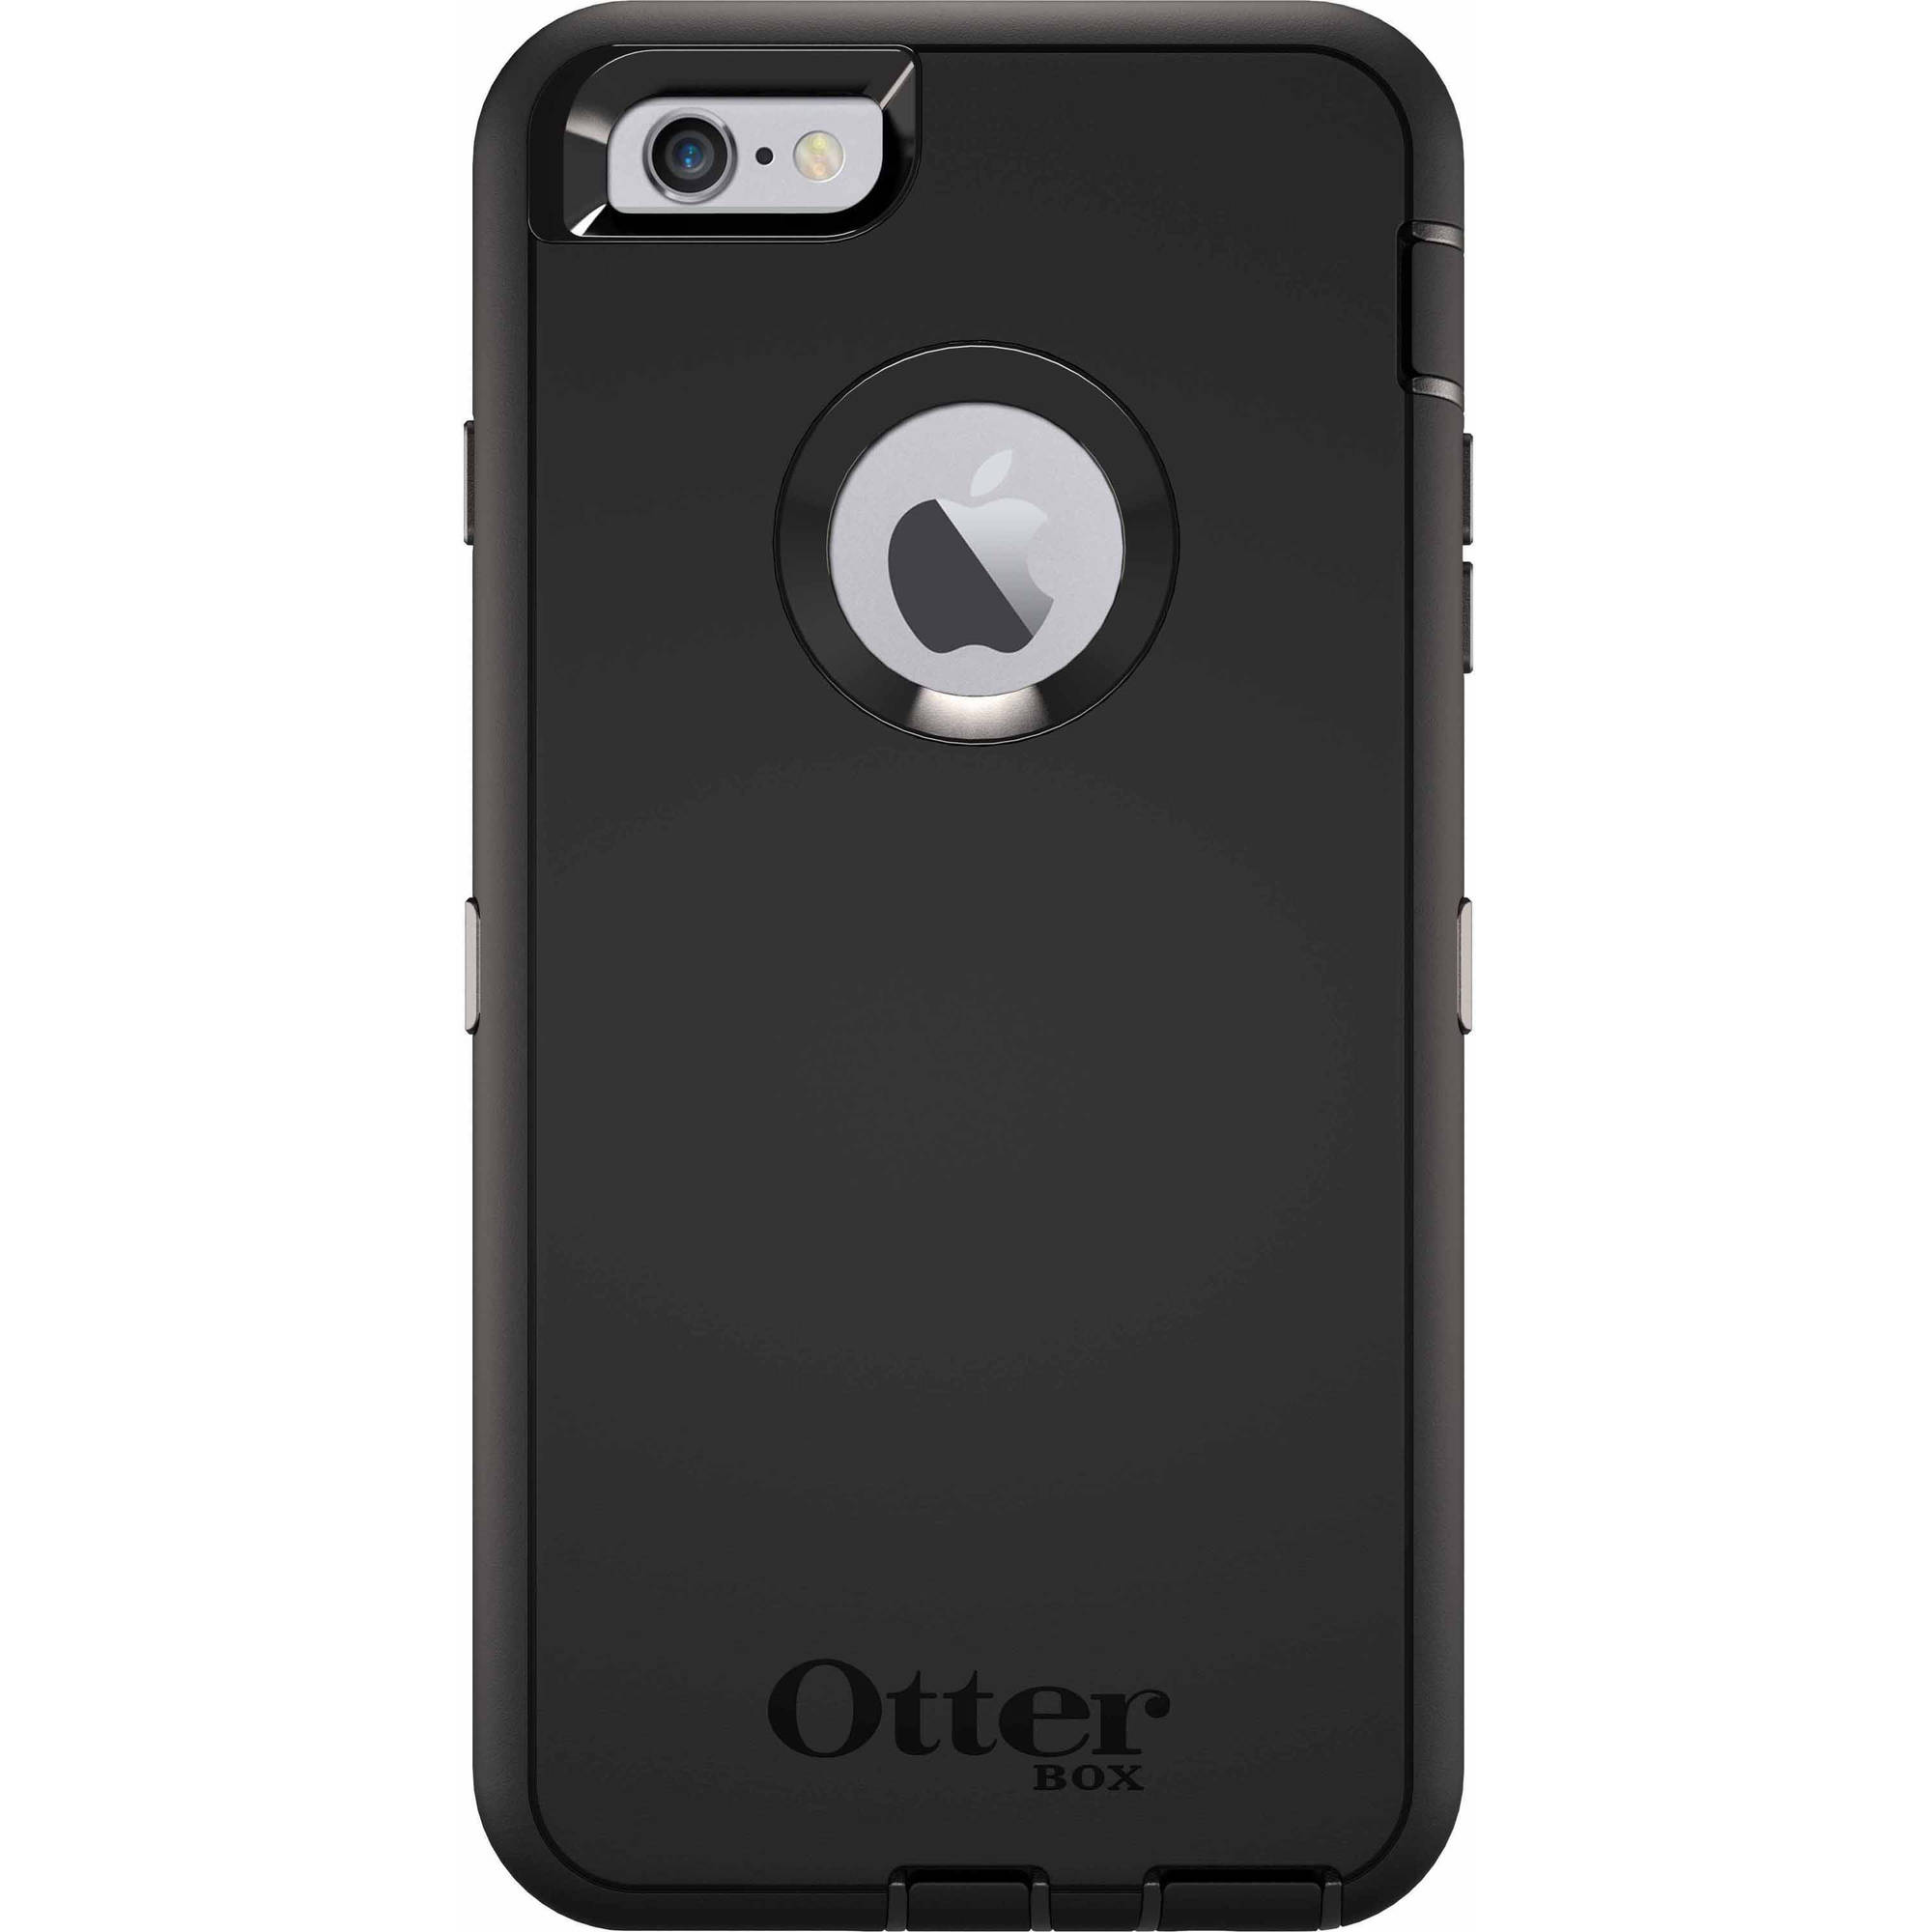 Iphone 6 Plus6s Plus Otterbox Defender Case Black Walmart